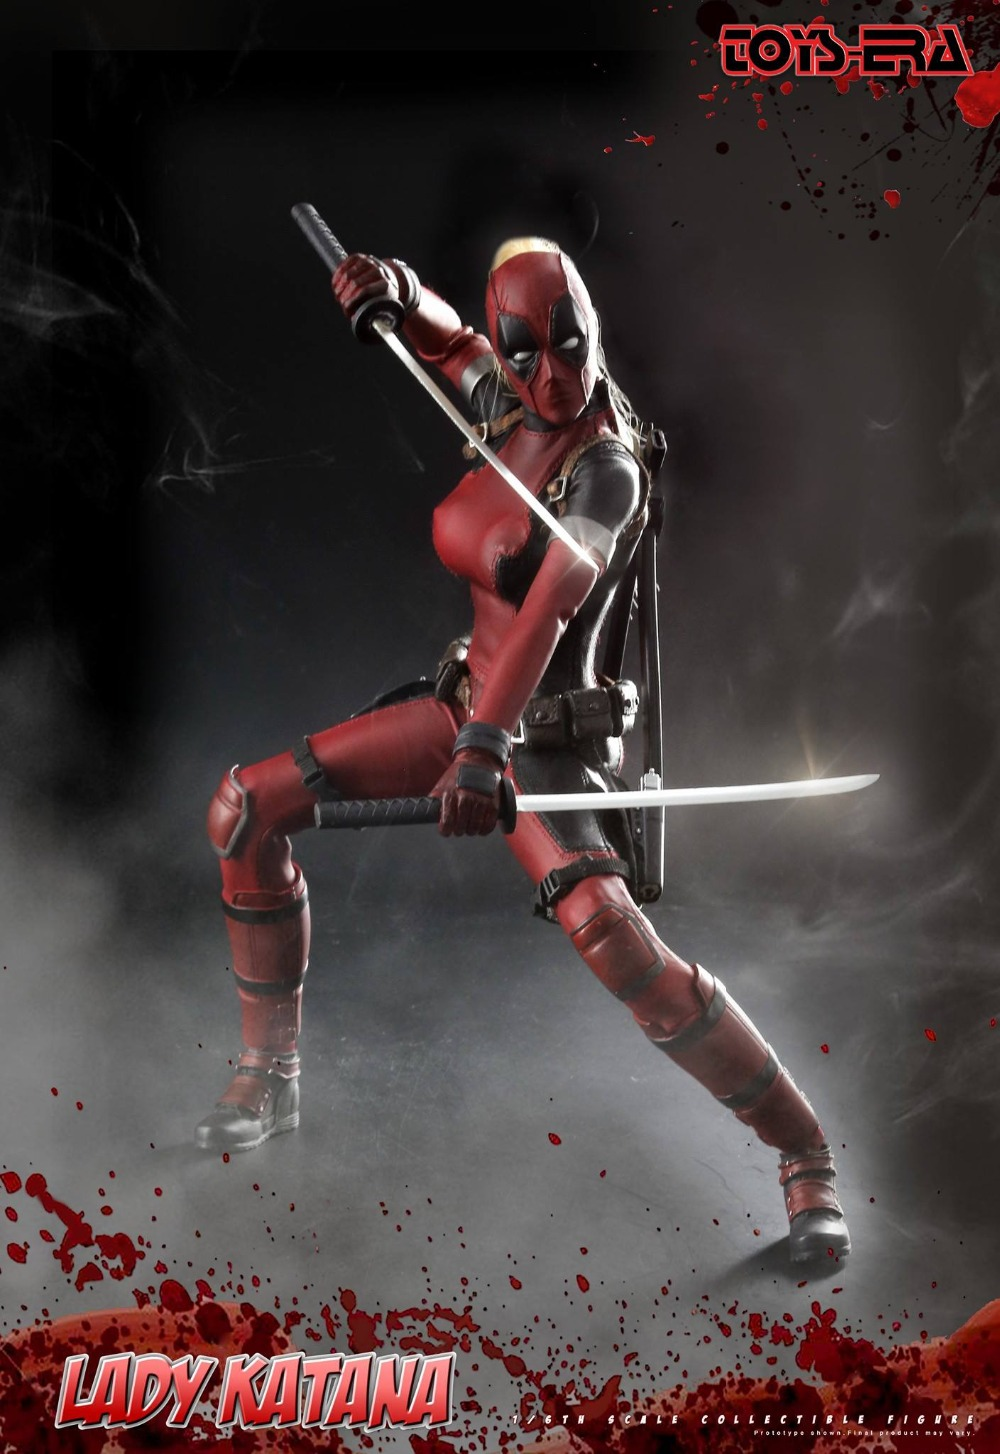 1/6th scale figure Female warrior Lady Katana in Deadpool clothing 12 Action figure doll Collectible Plastic Model Toys комбо для гитары boss katana mini